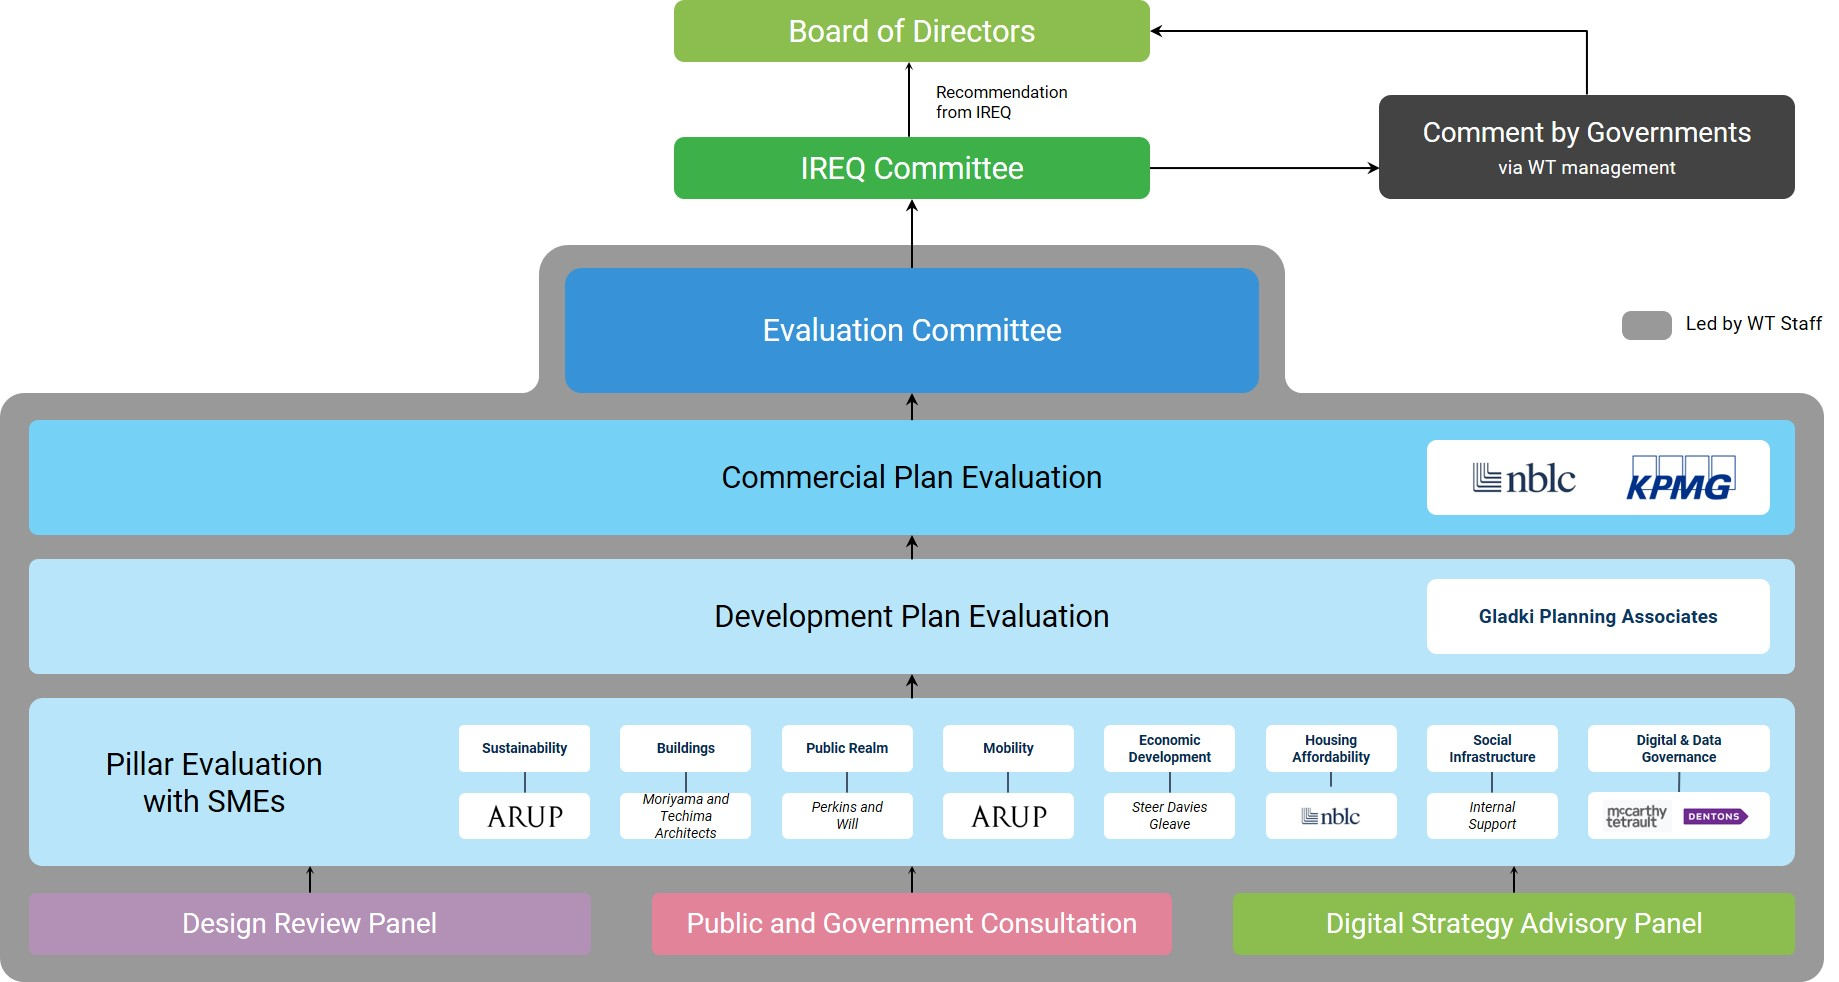 MIDP Evaluation Structure - November 4, 2019